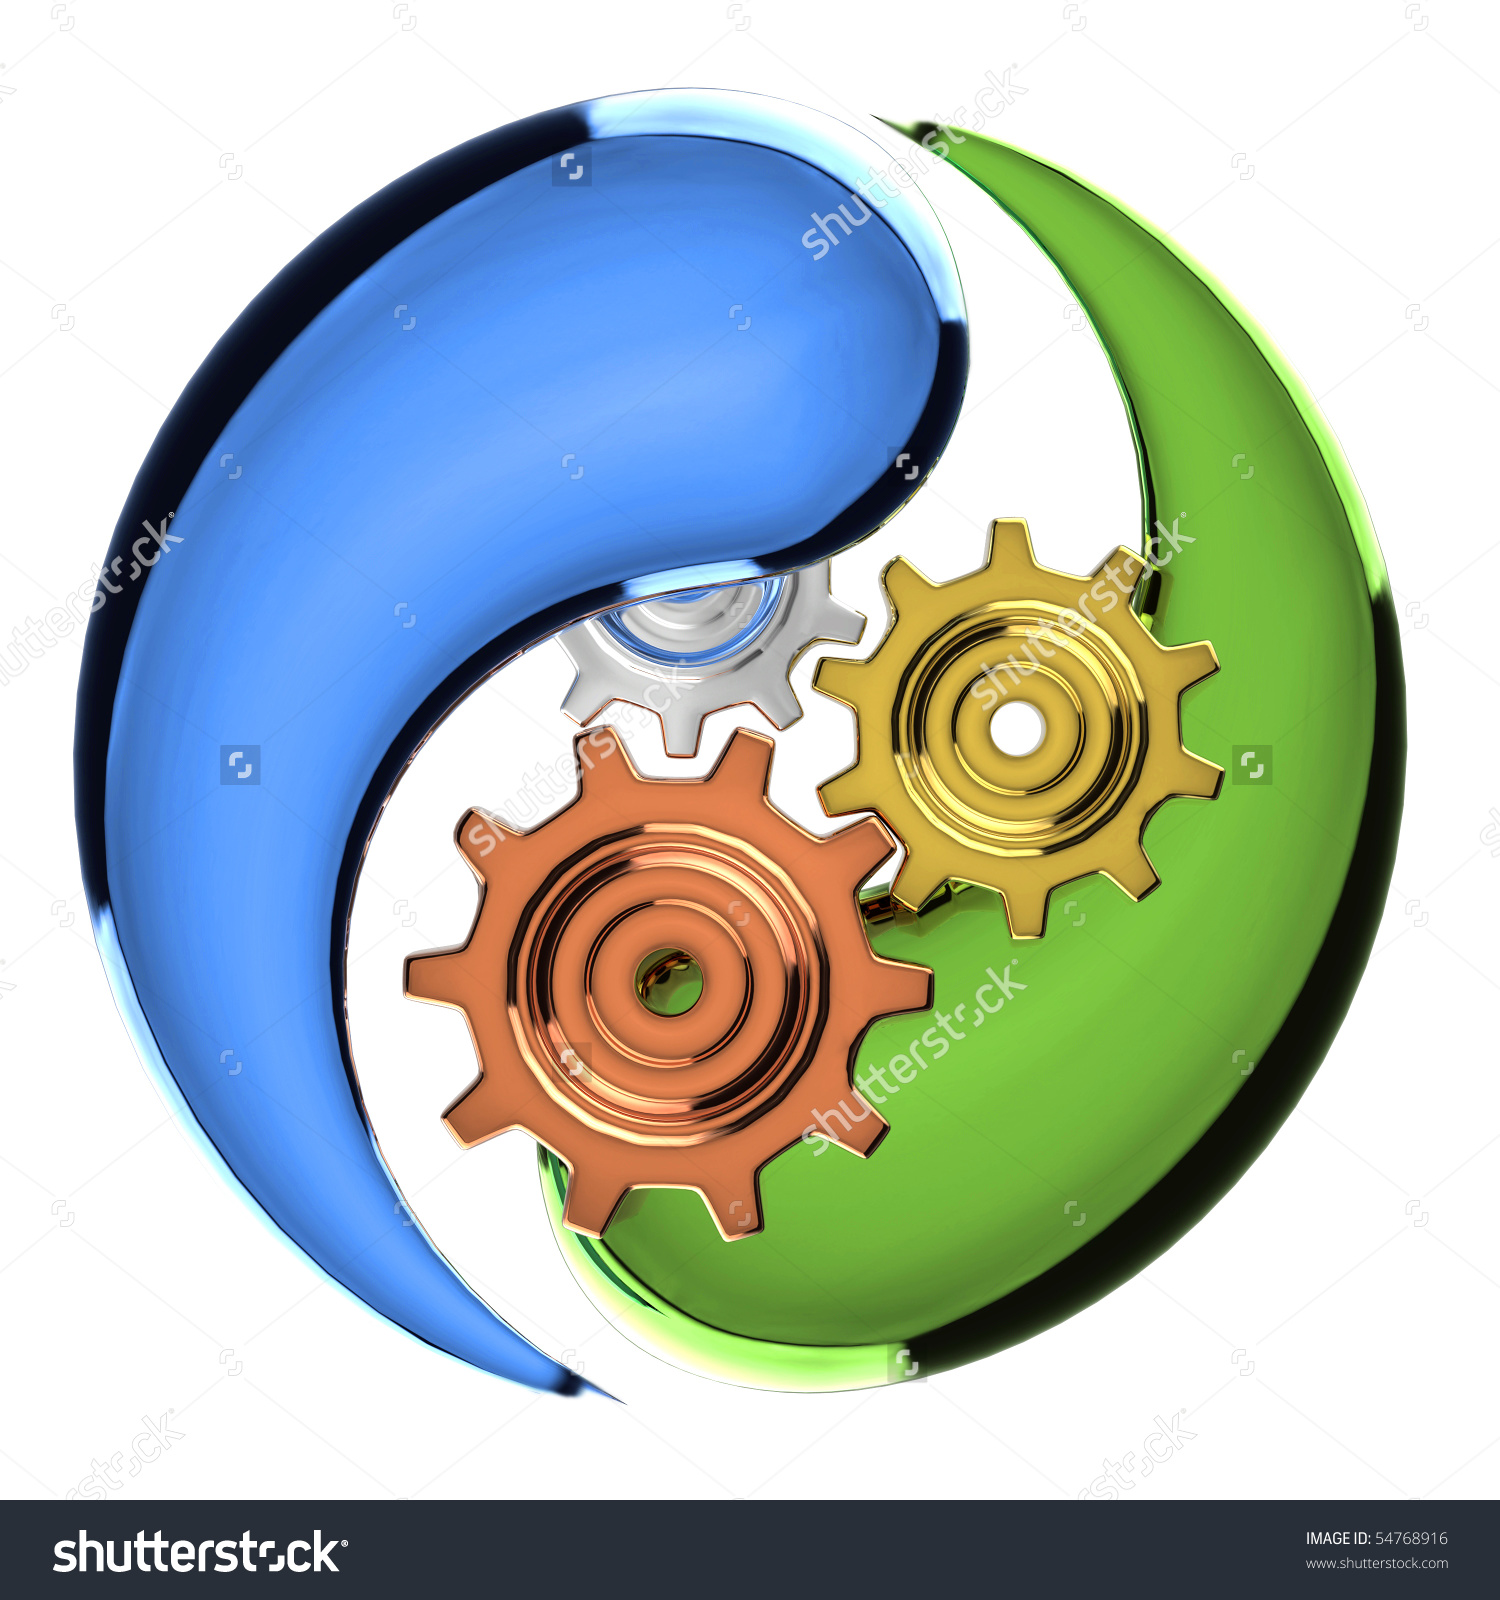 Isolated Ecology Protection Mechanism Symbol Stock Photo 54768916.